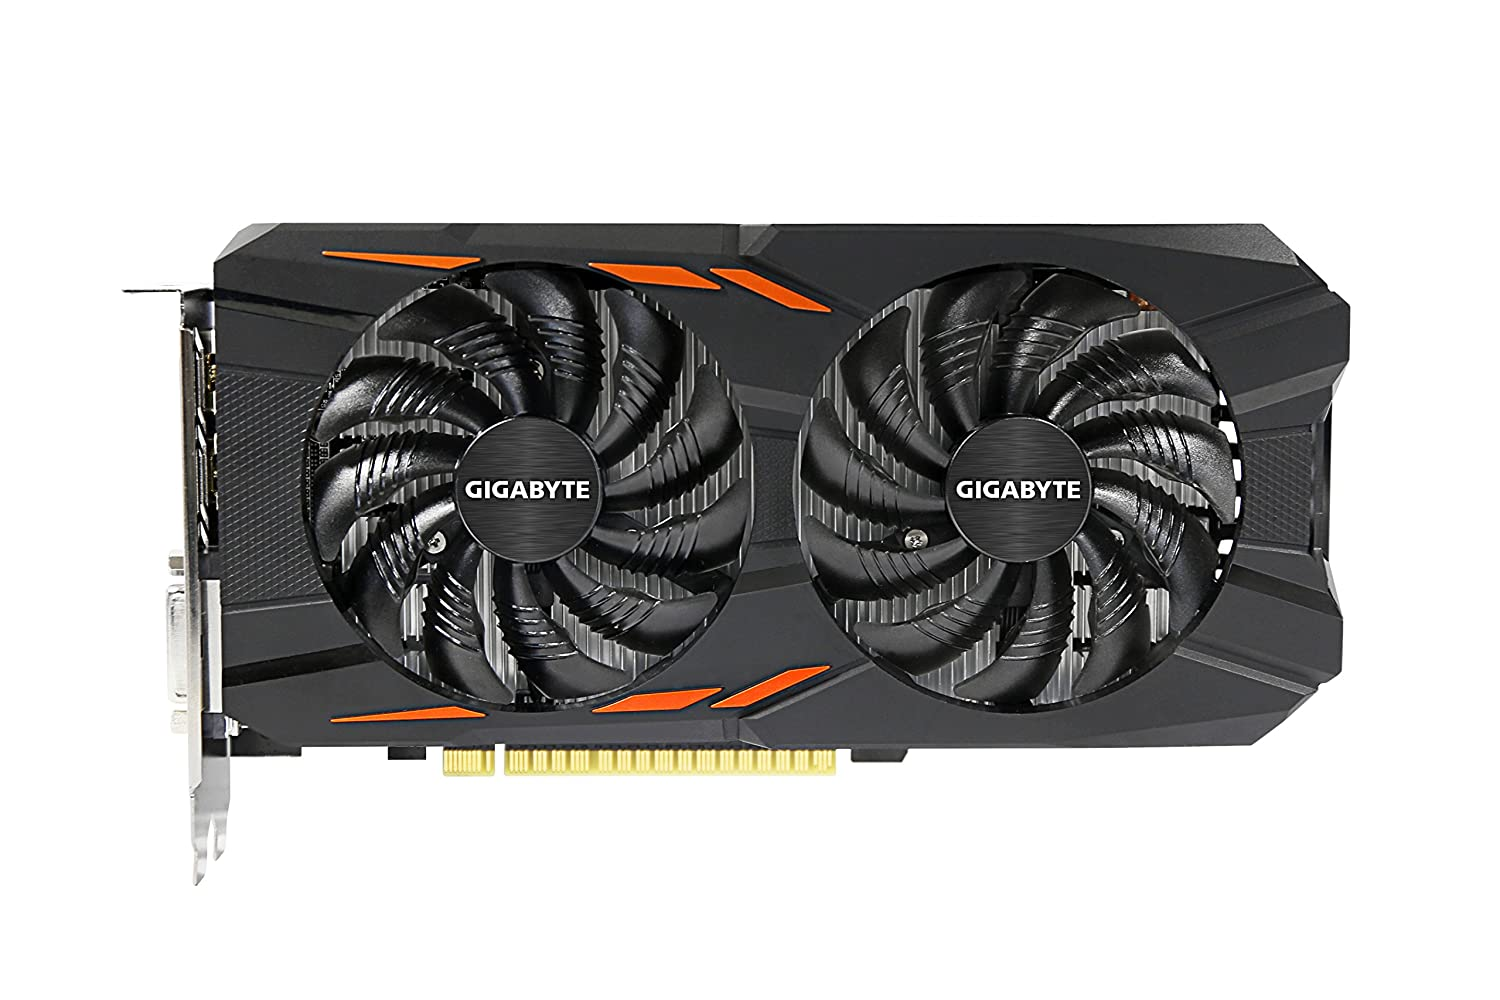 Amazon.com: Gigabyte GTX 1050 Ti Windforce OC 4GB GDDR5 128-bit PCI-E  Graphic Card (GV-N105TWF2OC-4GD): Computers & Accessories